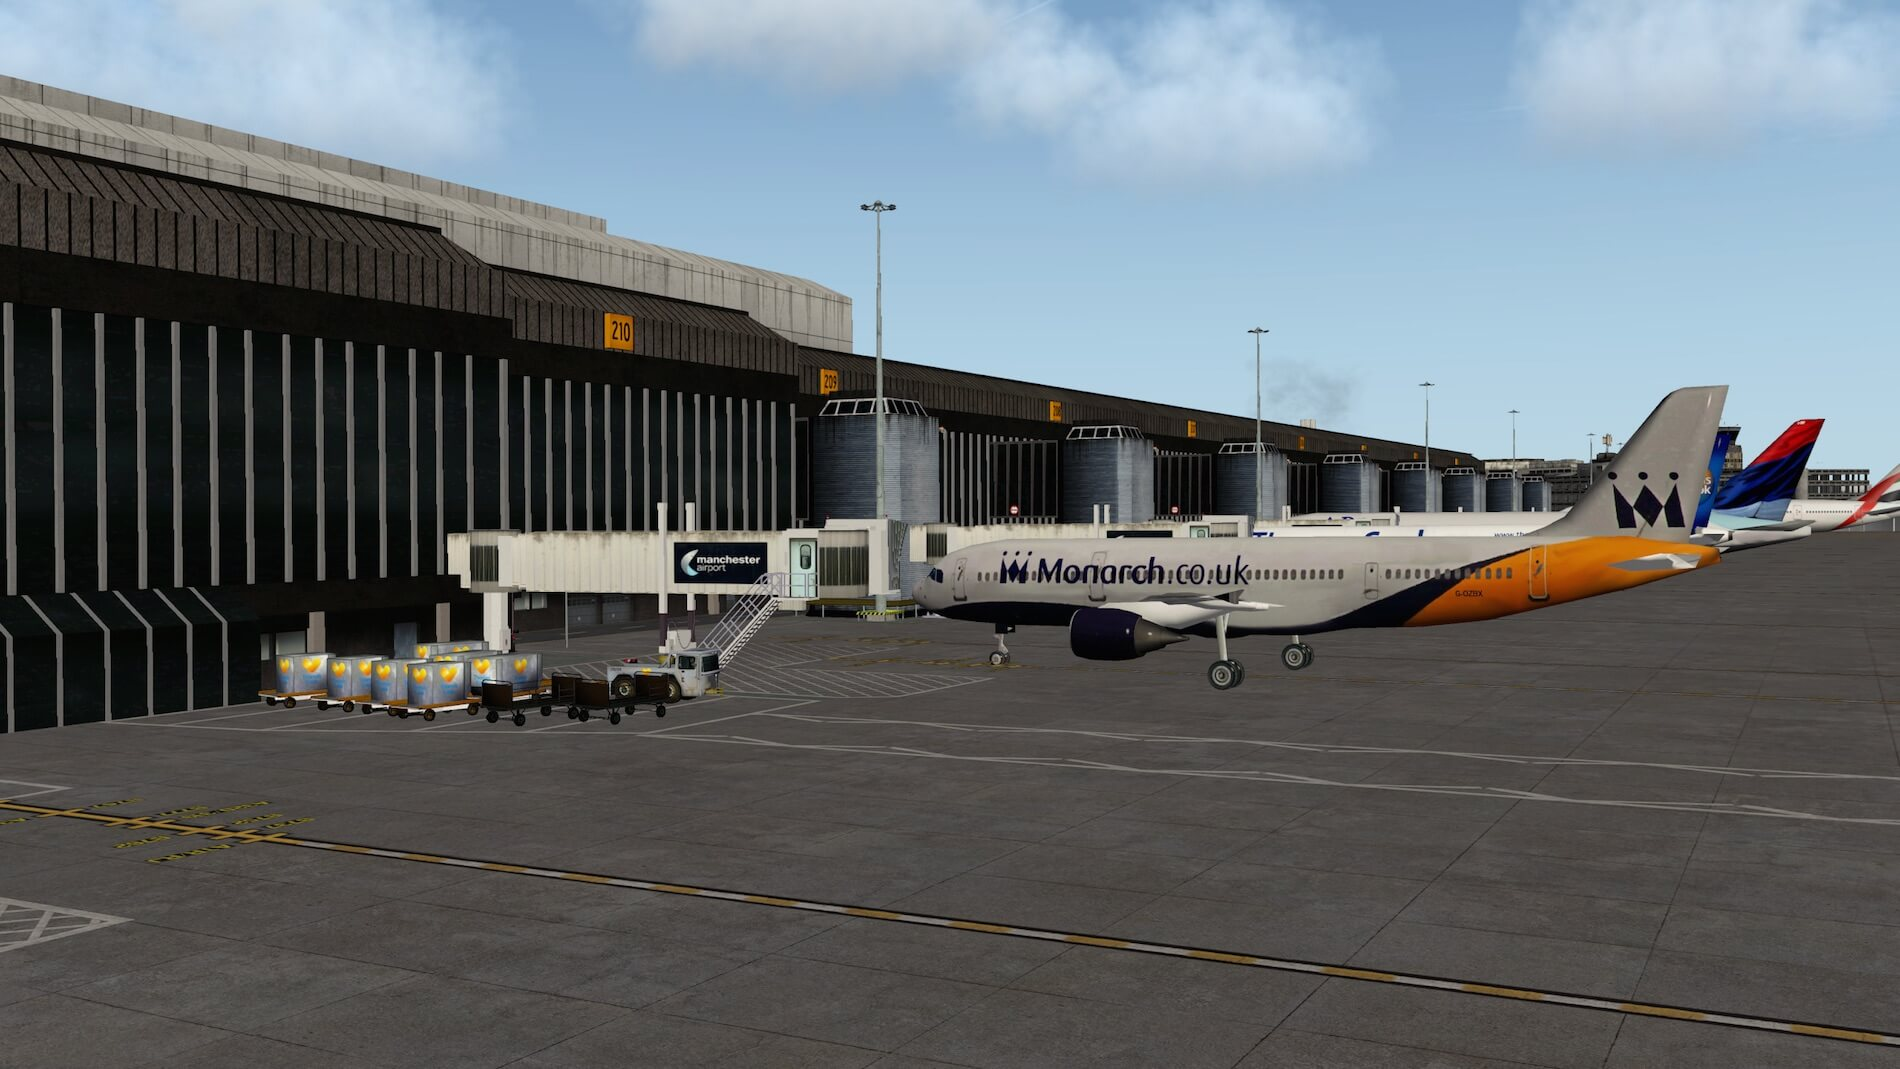 Icarus-Manchester-Airport-21